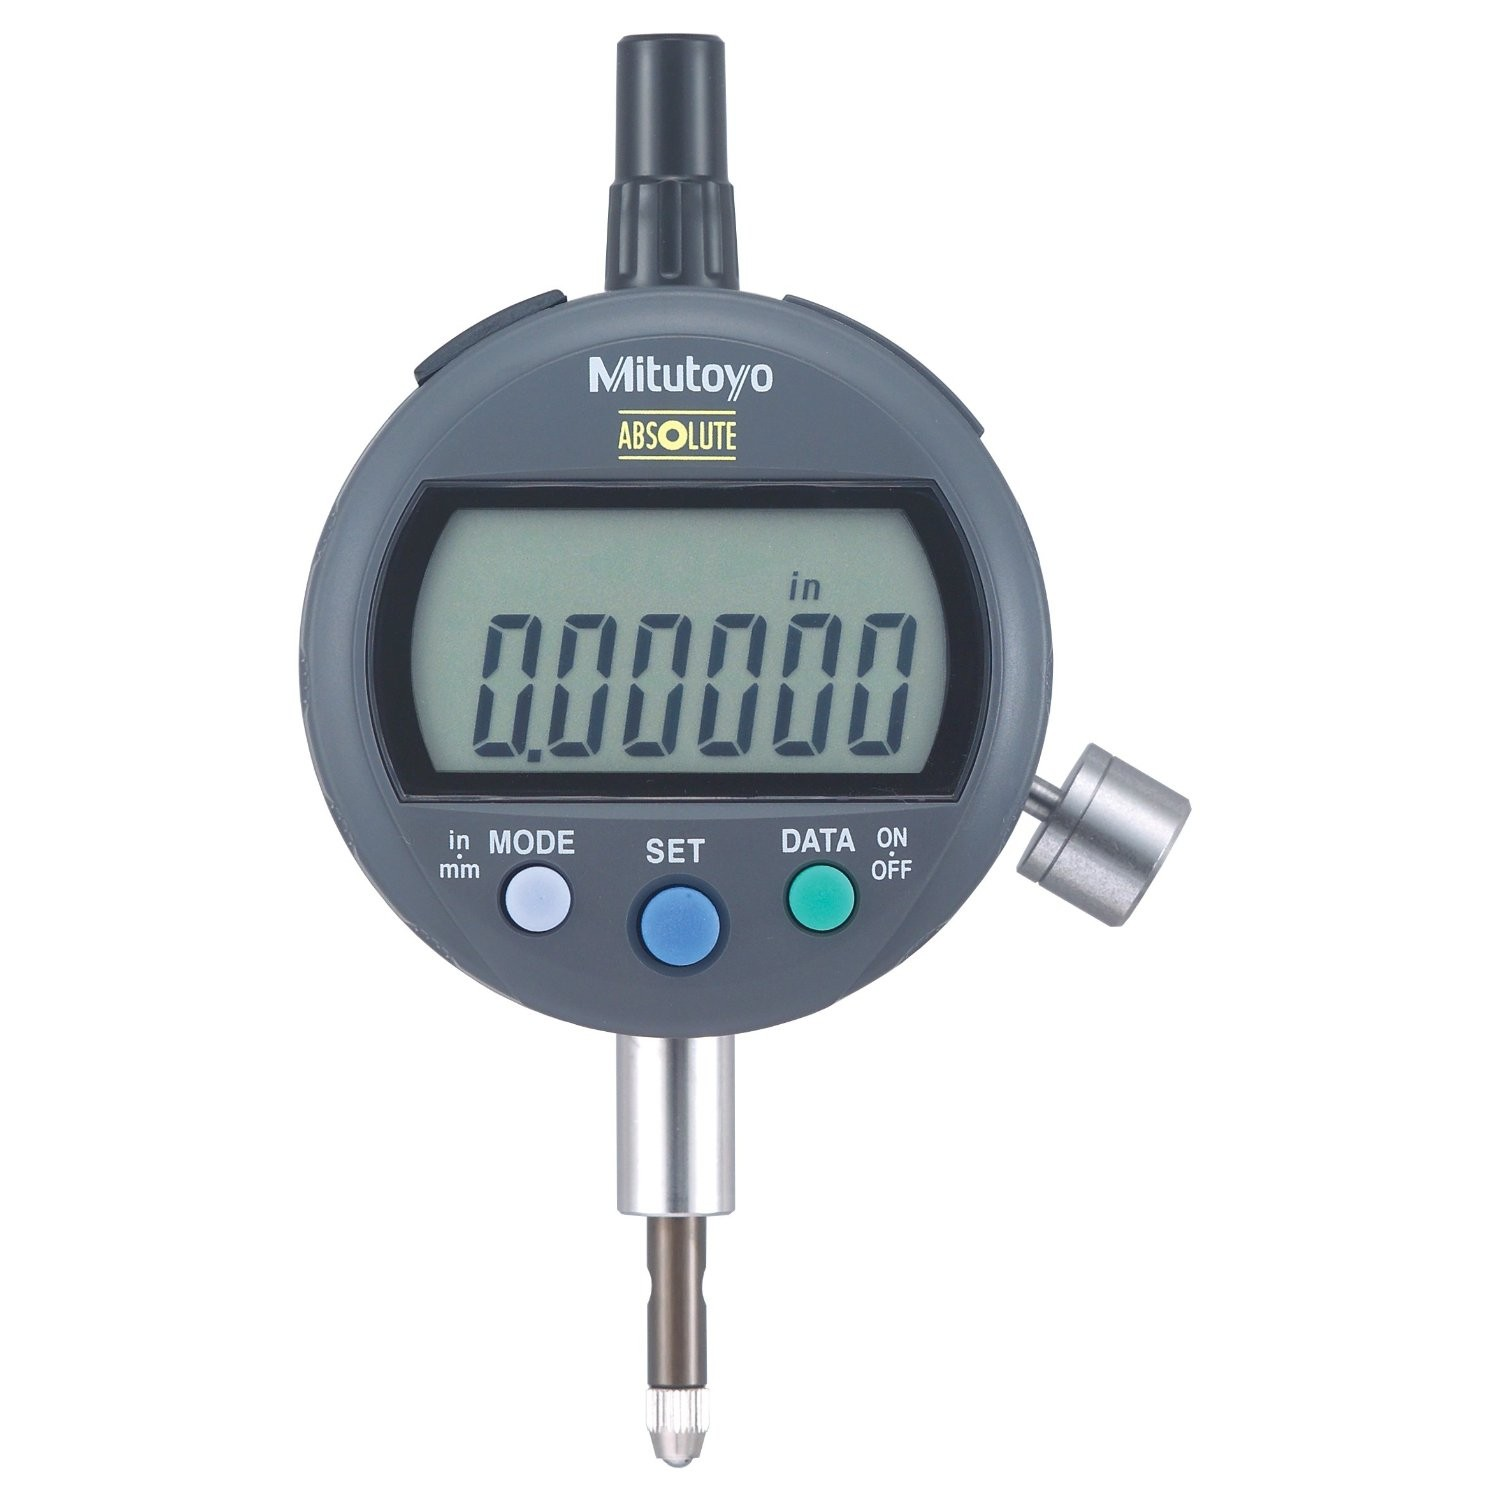 Mitutoyo 543-396B ABSOLUTE Digimatic Indicator with SPC output, ID-C